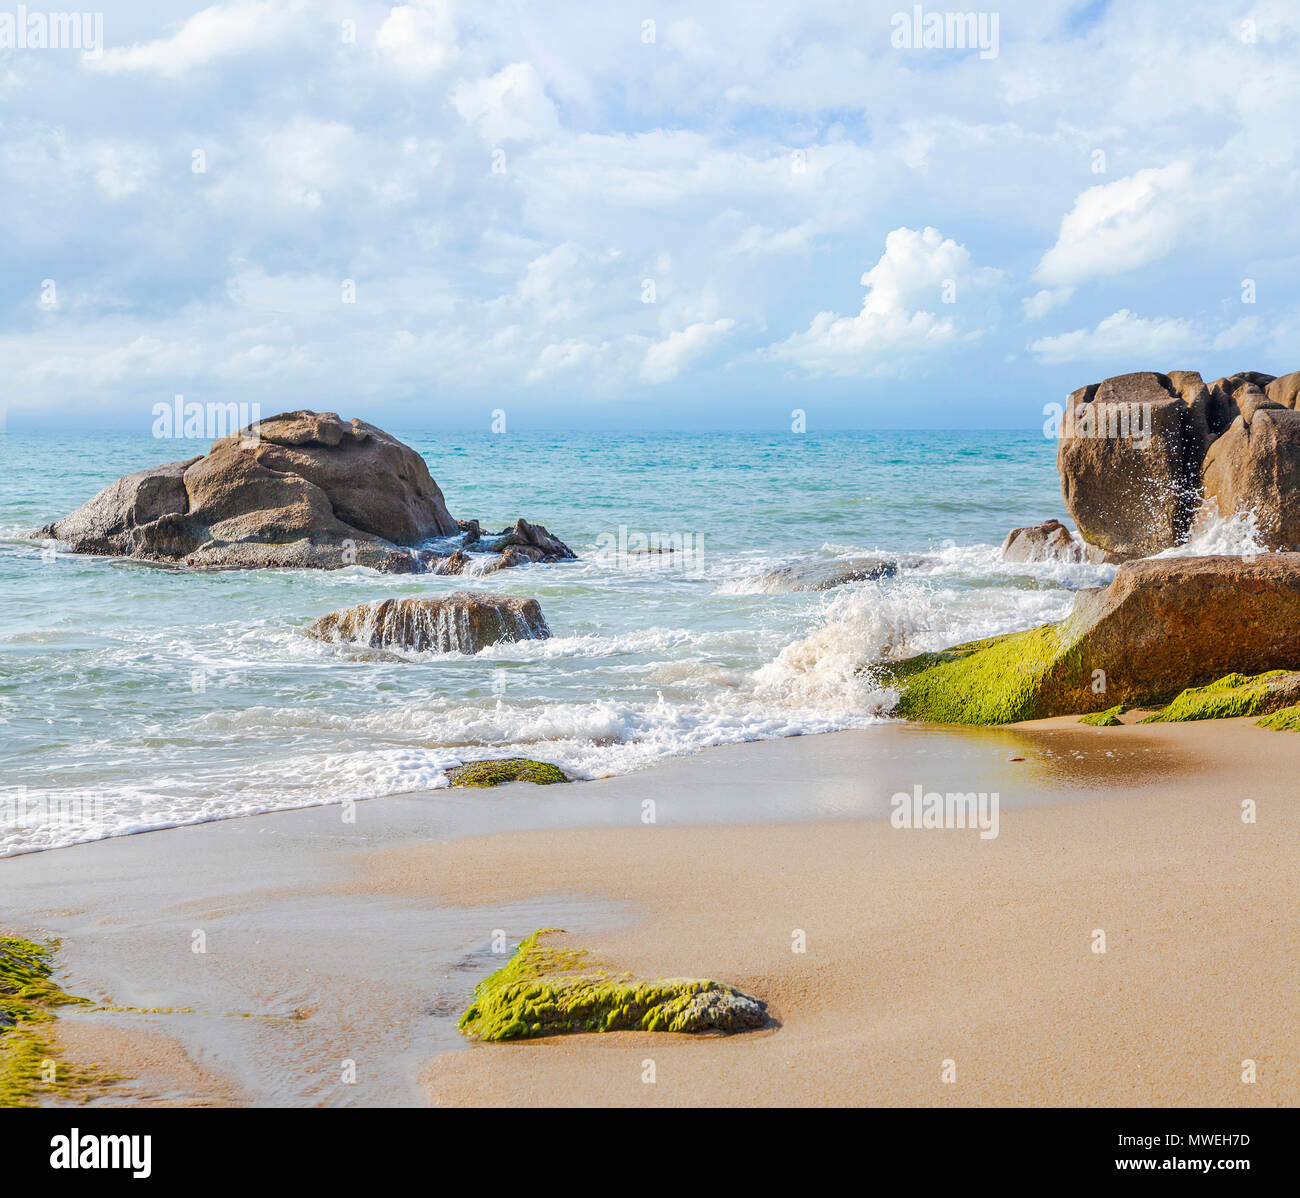 Azure sea of Thailand. - Stock Image